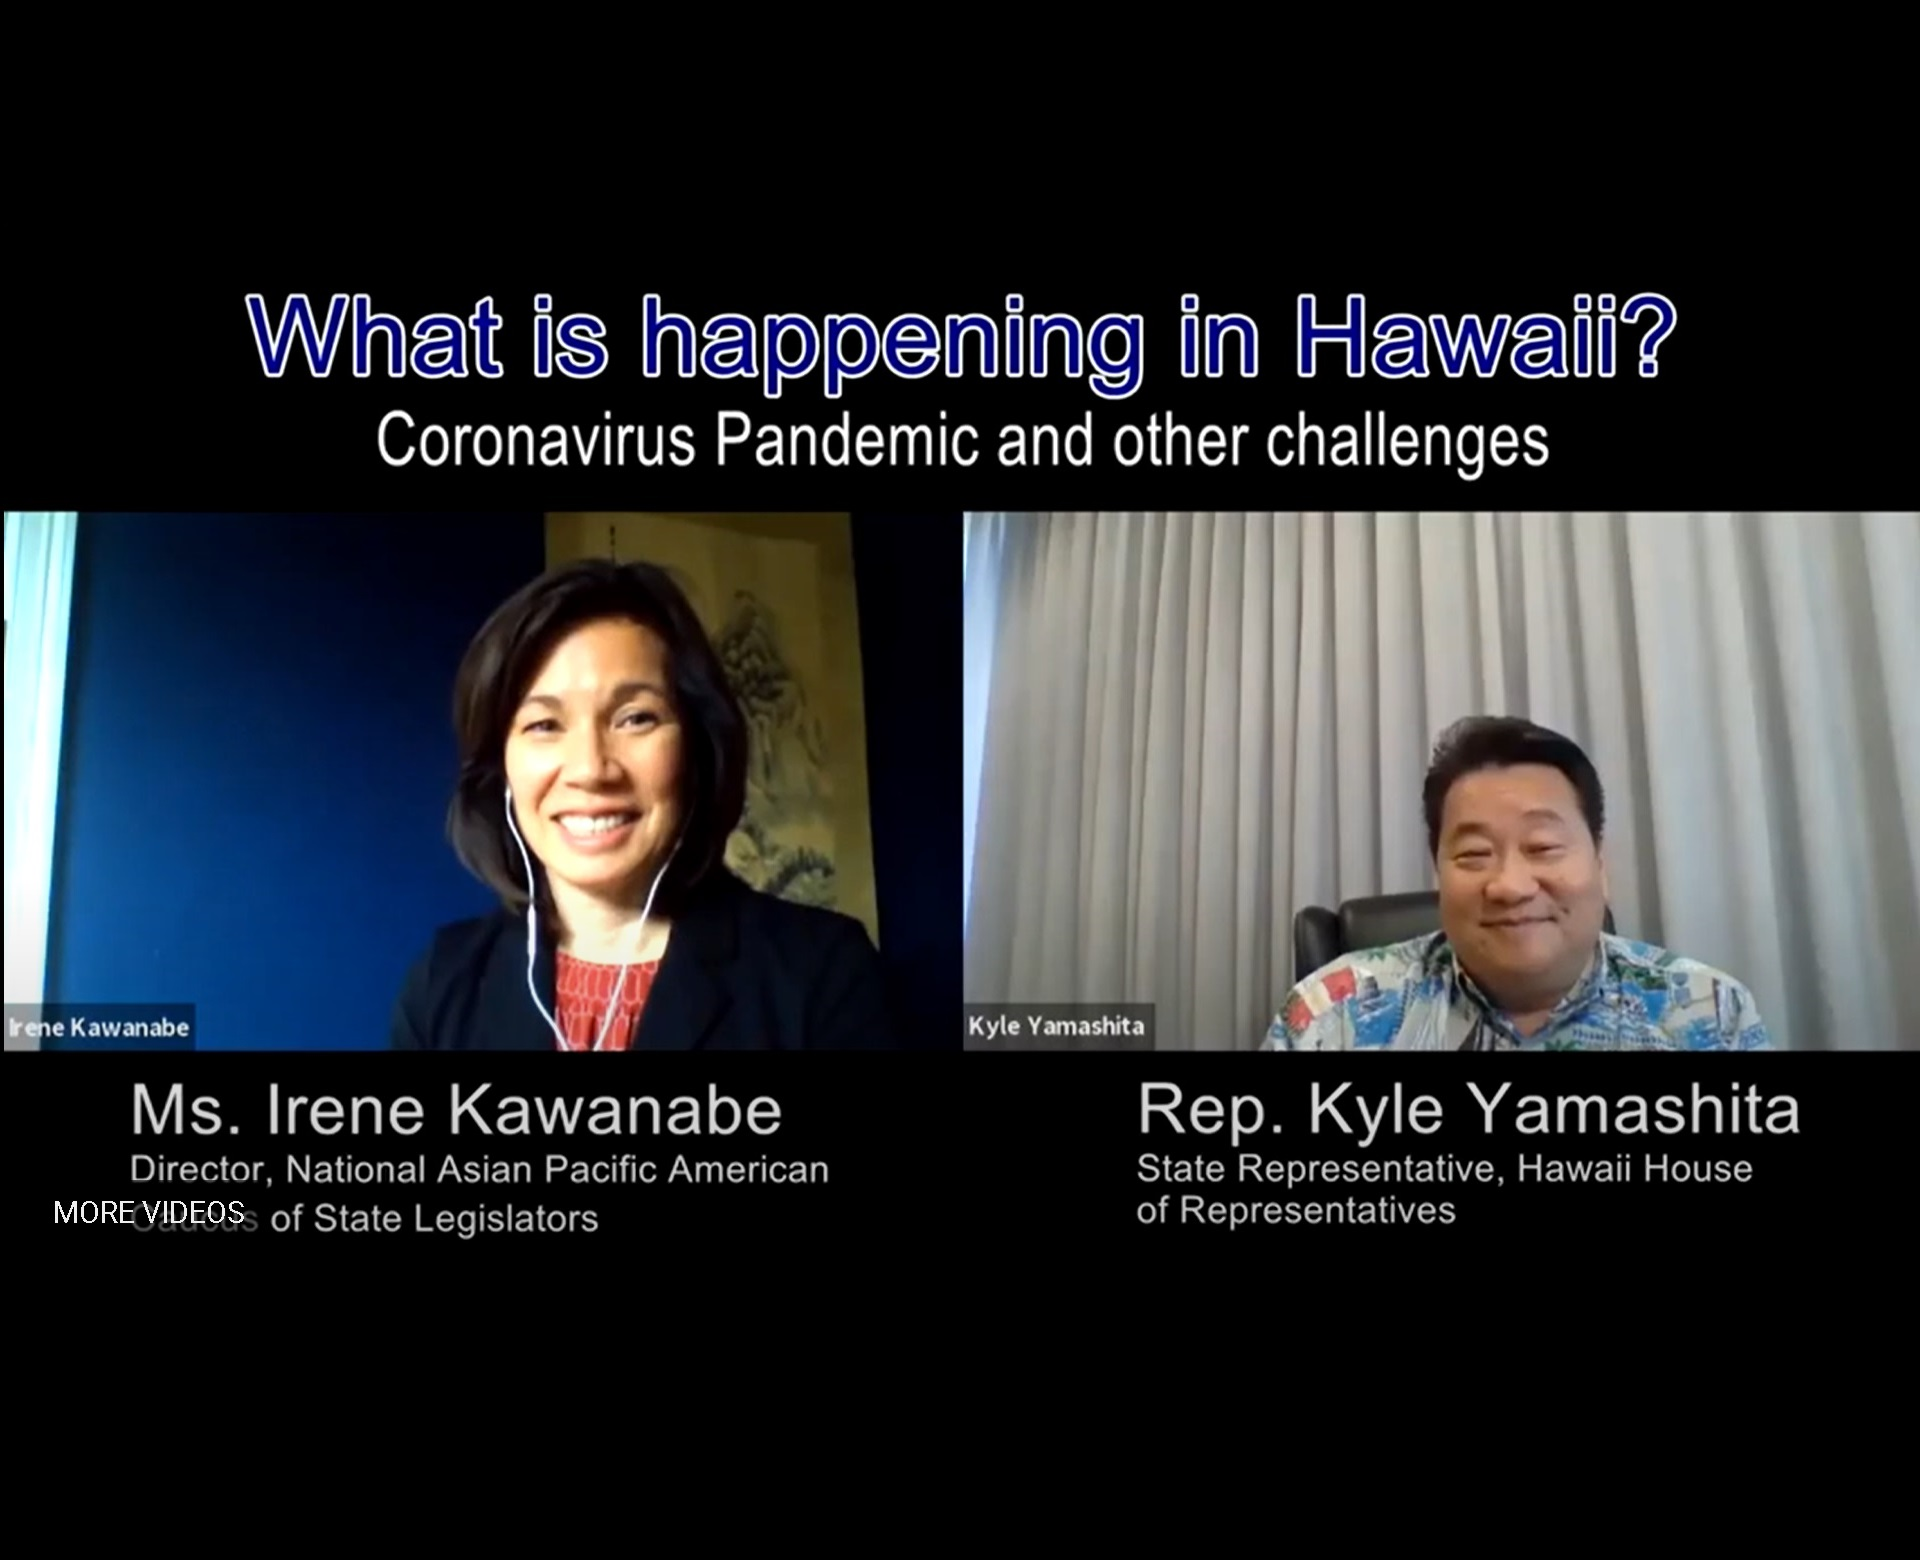 Video: What is Happening in Hawaii? The Coronavirus Pandemic and Other Challenges